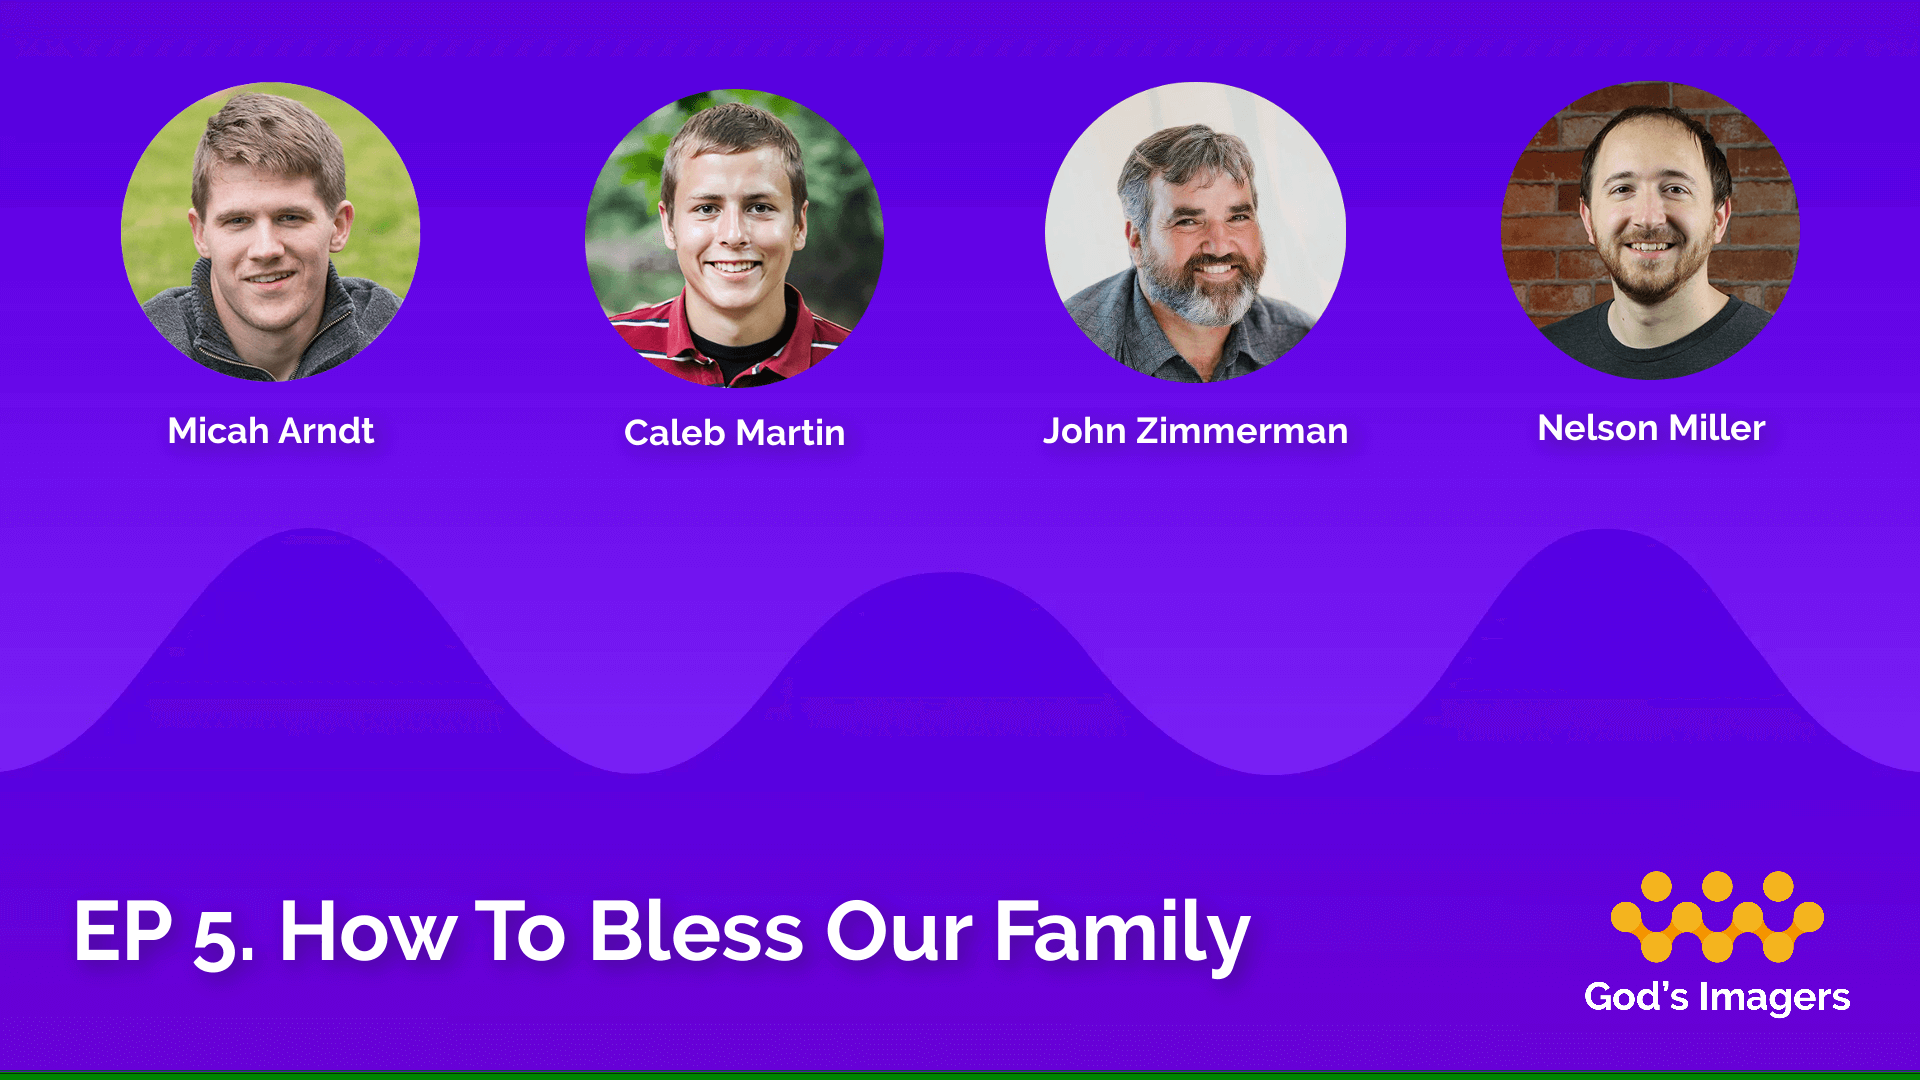 EP 5: How To Bless Your Family